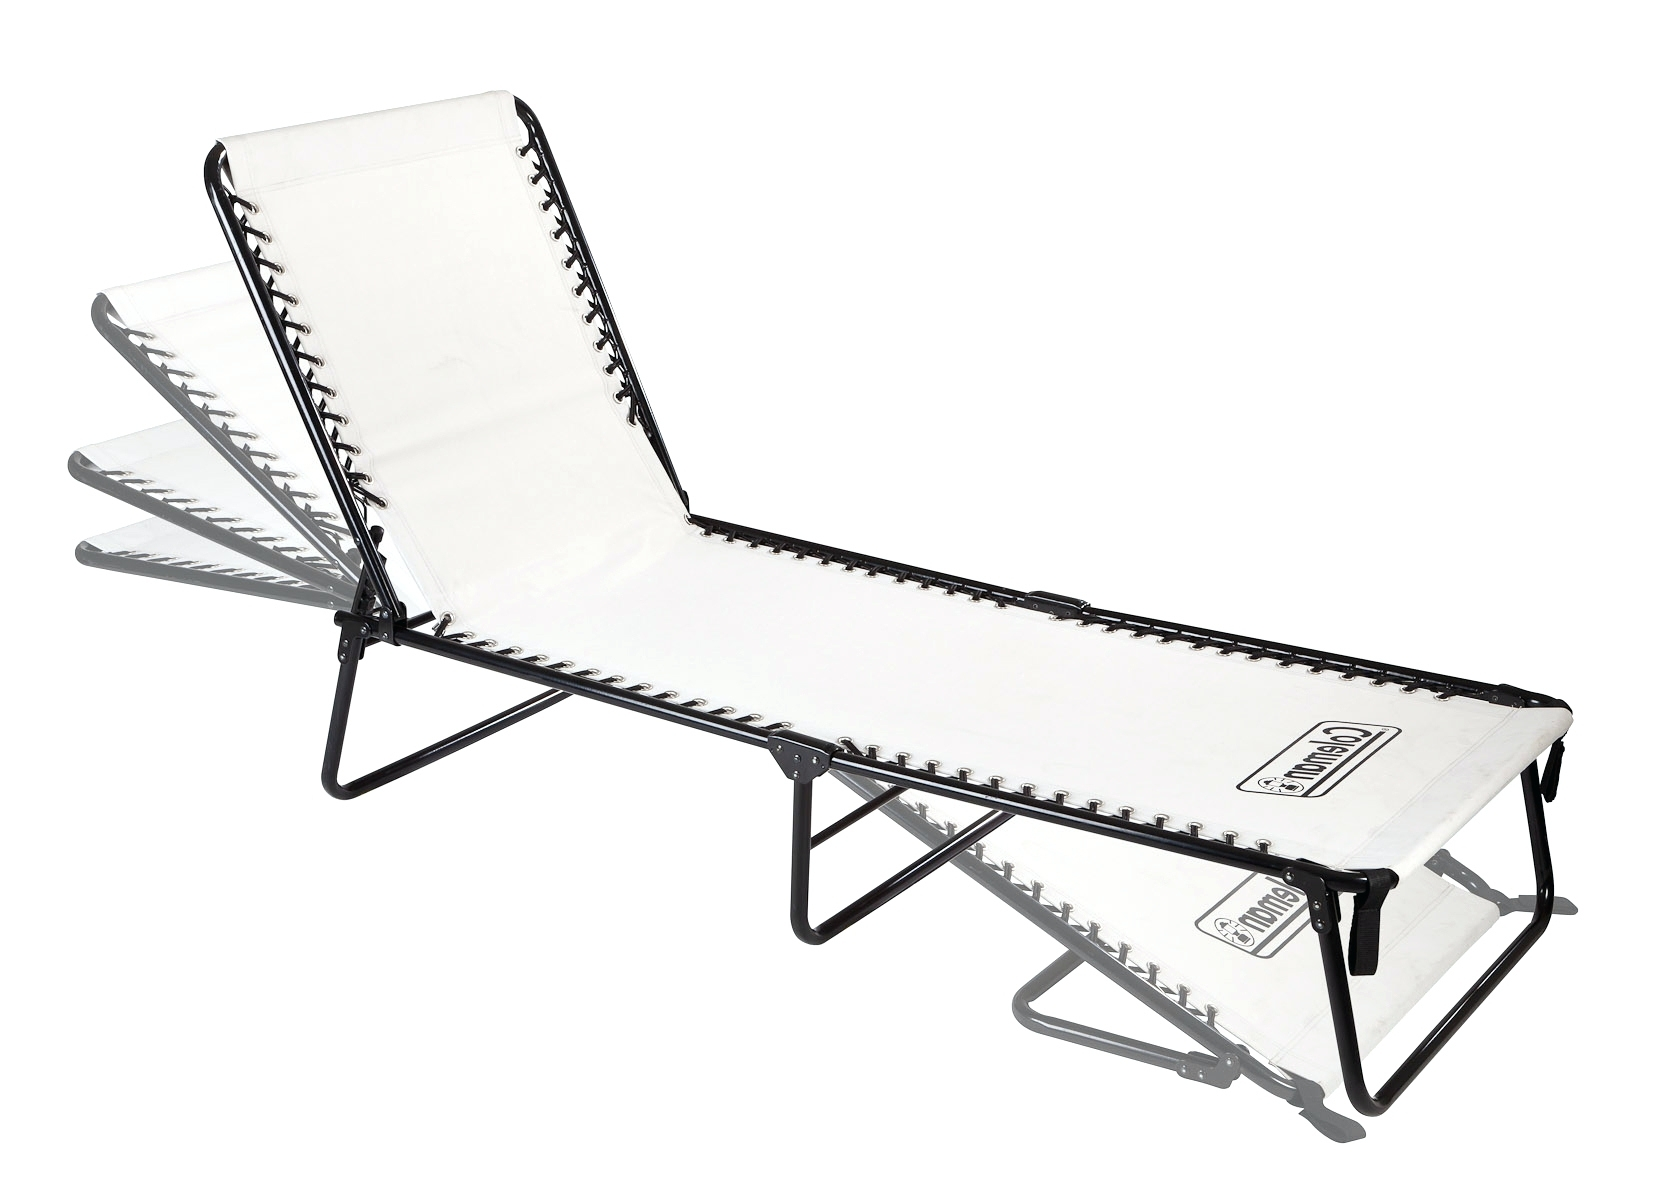 Portable Outdoor Chaise Lounge Chairs Intended For 2018 Portable Chaise Lounge Chairs Outdoor • Lounge Chairs Ideas (View 11 of 15)